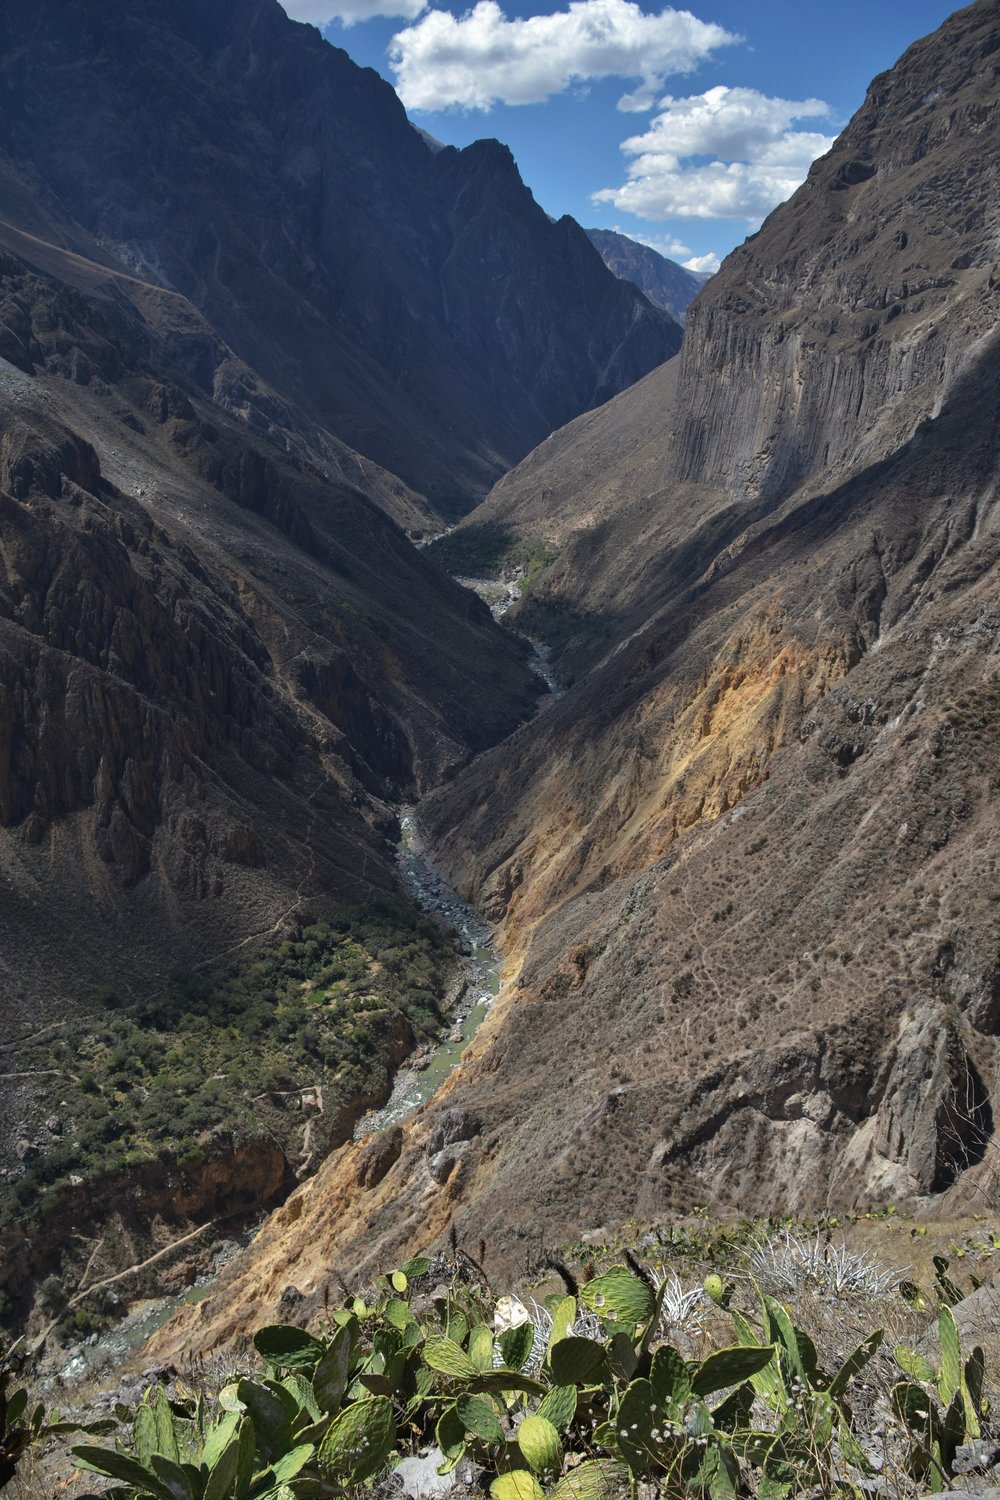 The Colca Canyon.